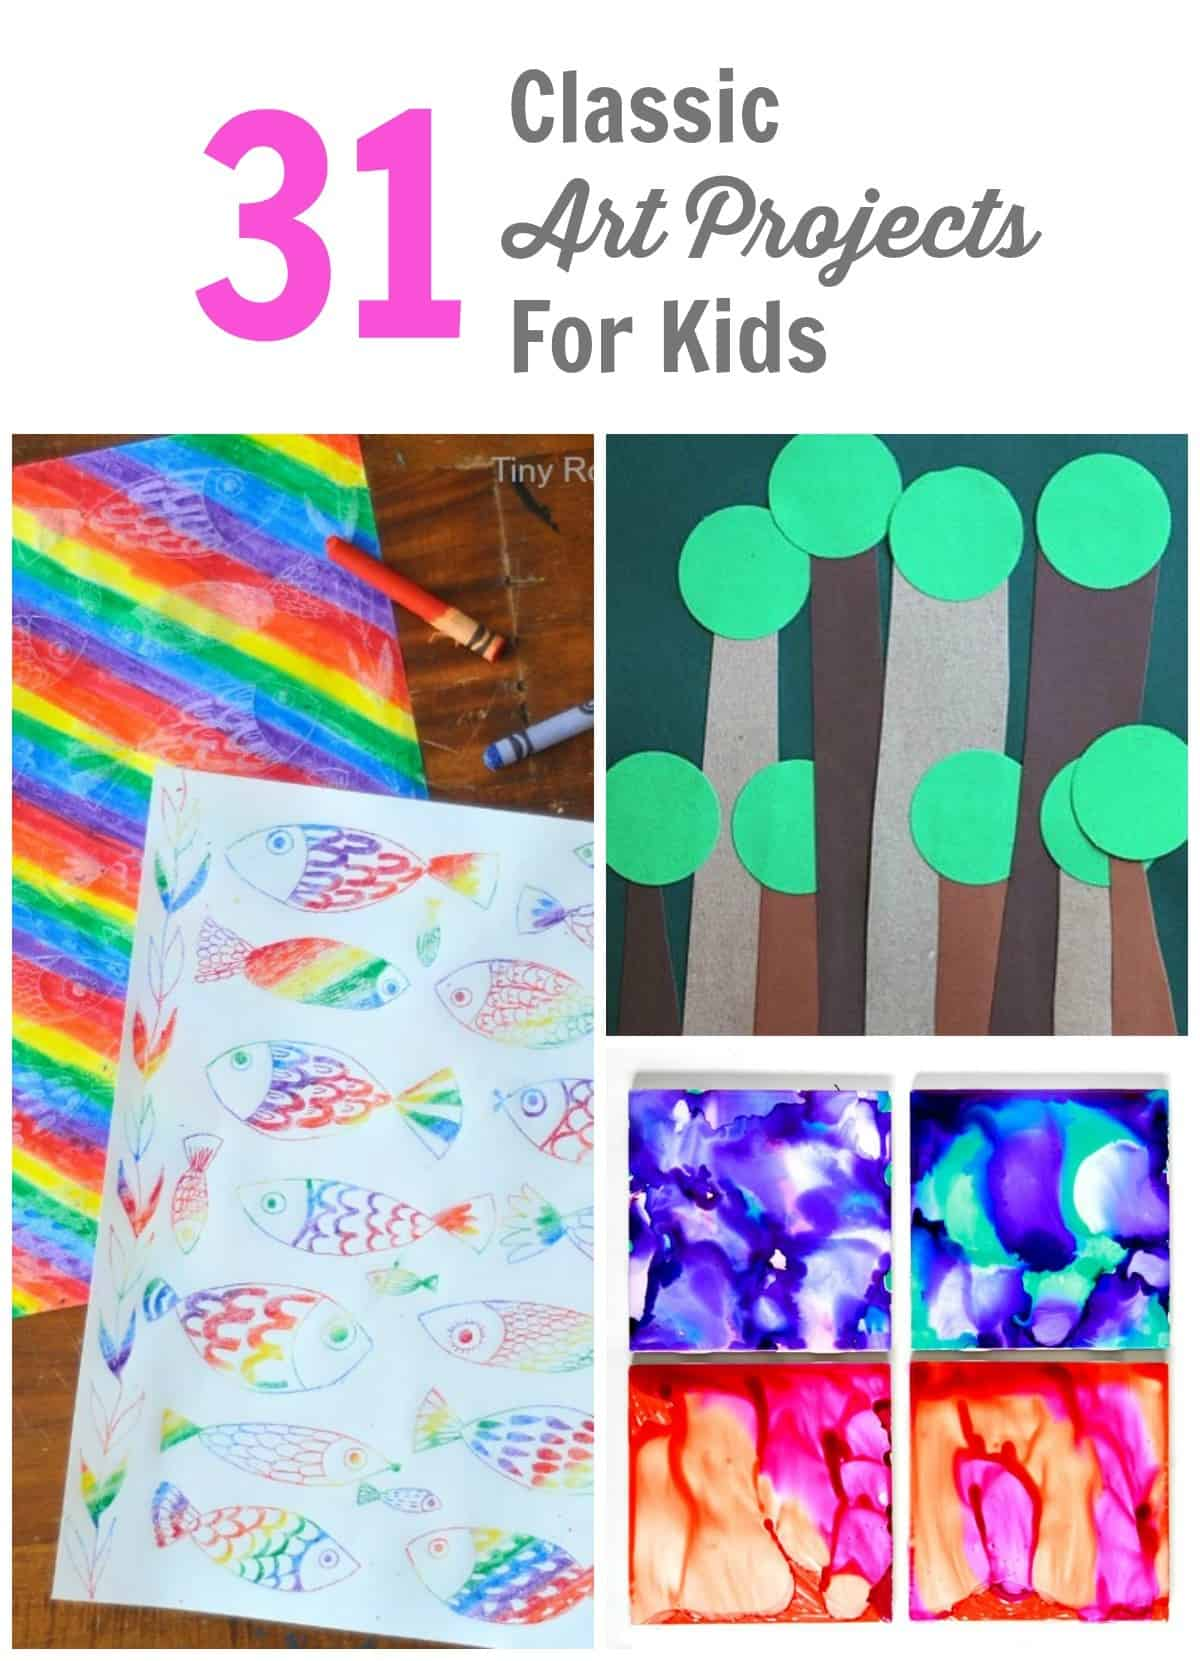 31 Classic Art Projects for Kids